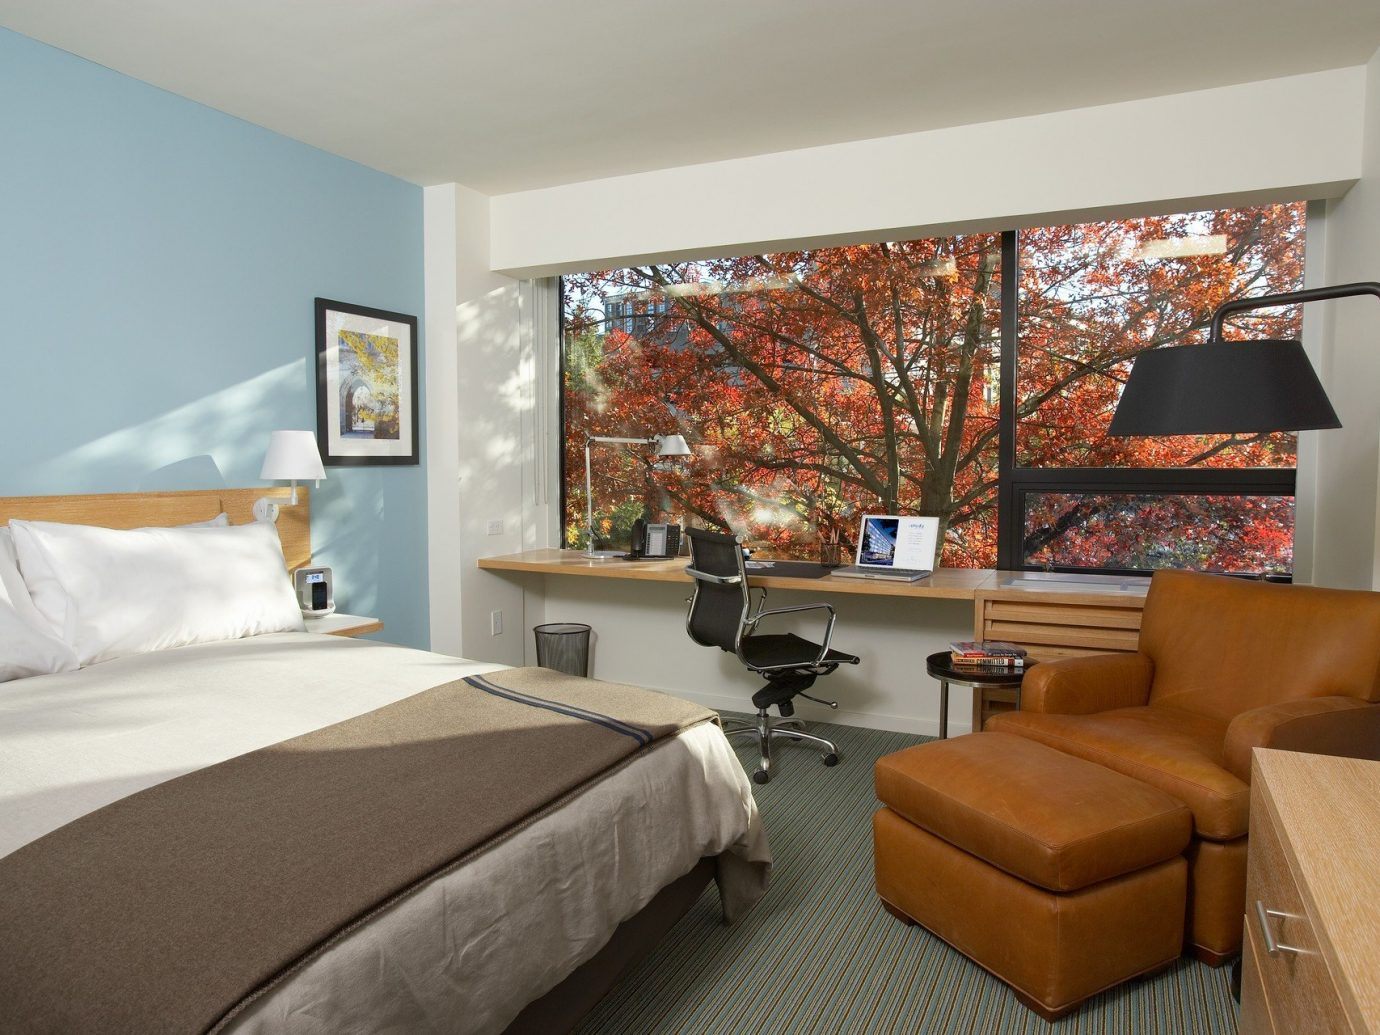 autumn bed Bedroom Boutique Fall Fall leaves foliage Garden view Hotels leaves natural light Nature trees view window indoor wall sofa room floor ceiling property living room home estate real estate interior design Suite hotel cottage Design condominium apartment furniture decorated